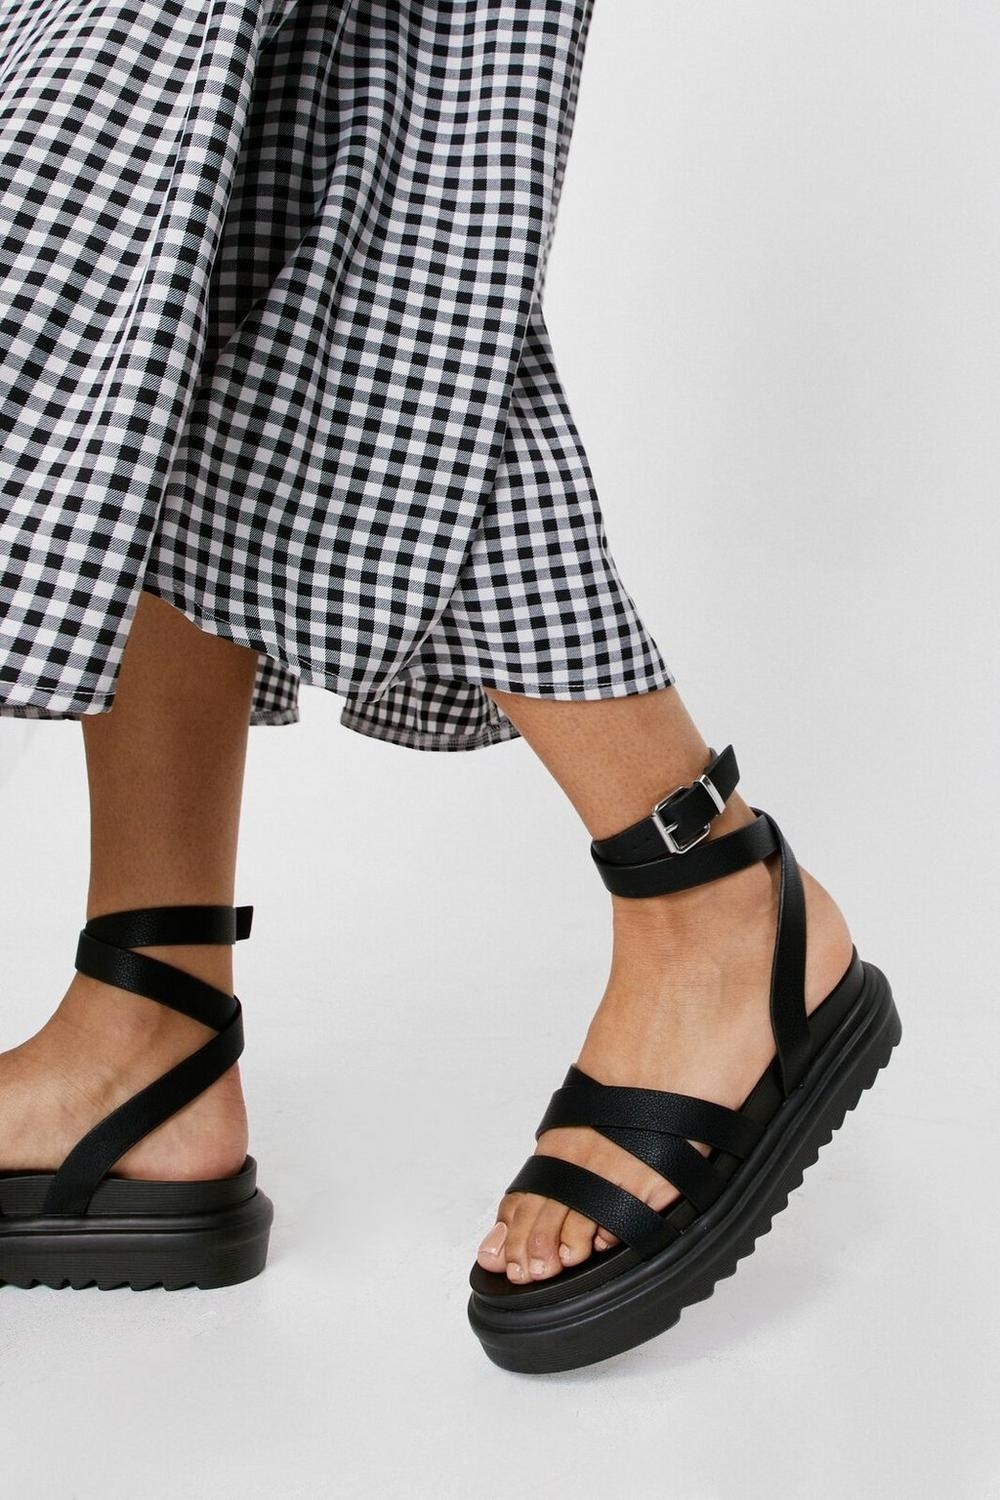 a pair of platform sandals with straps that attach around the ankles